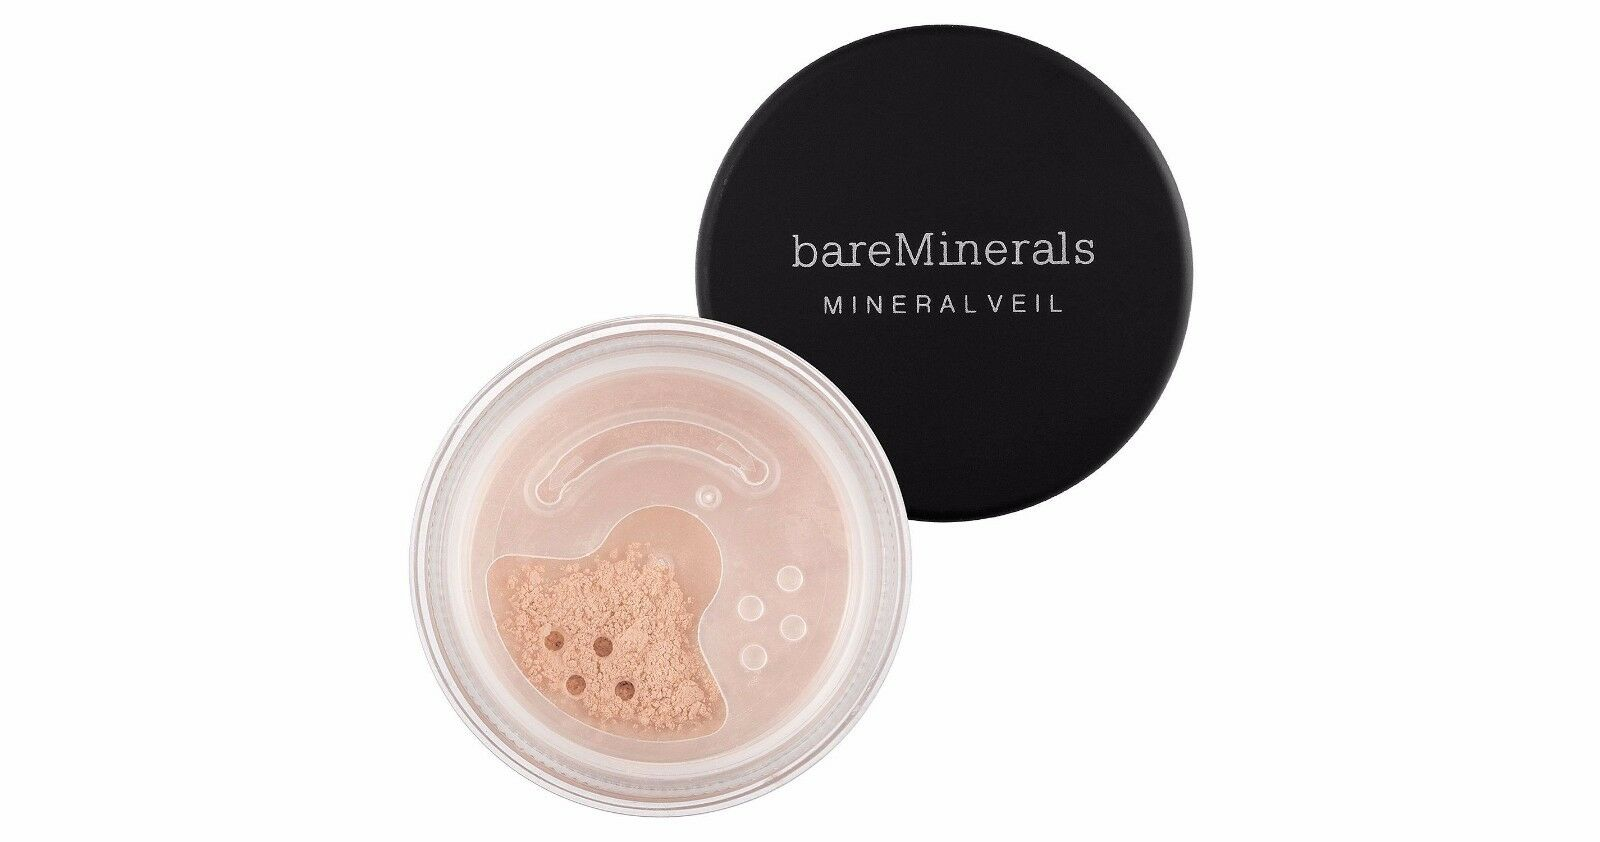 BareMinerals Mineral Veil Finishing Face Powder 9g Full Size